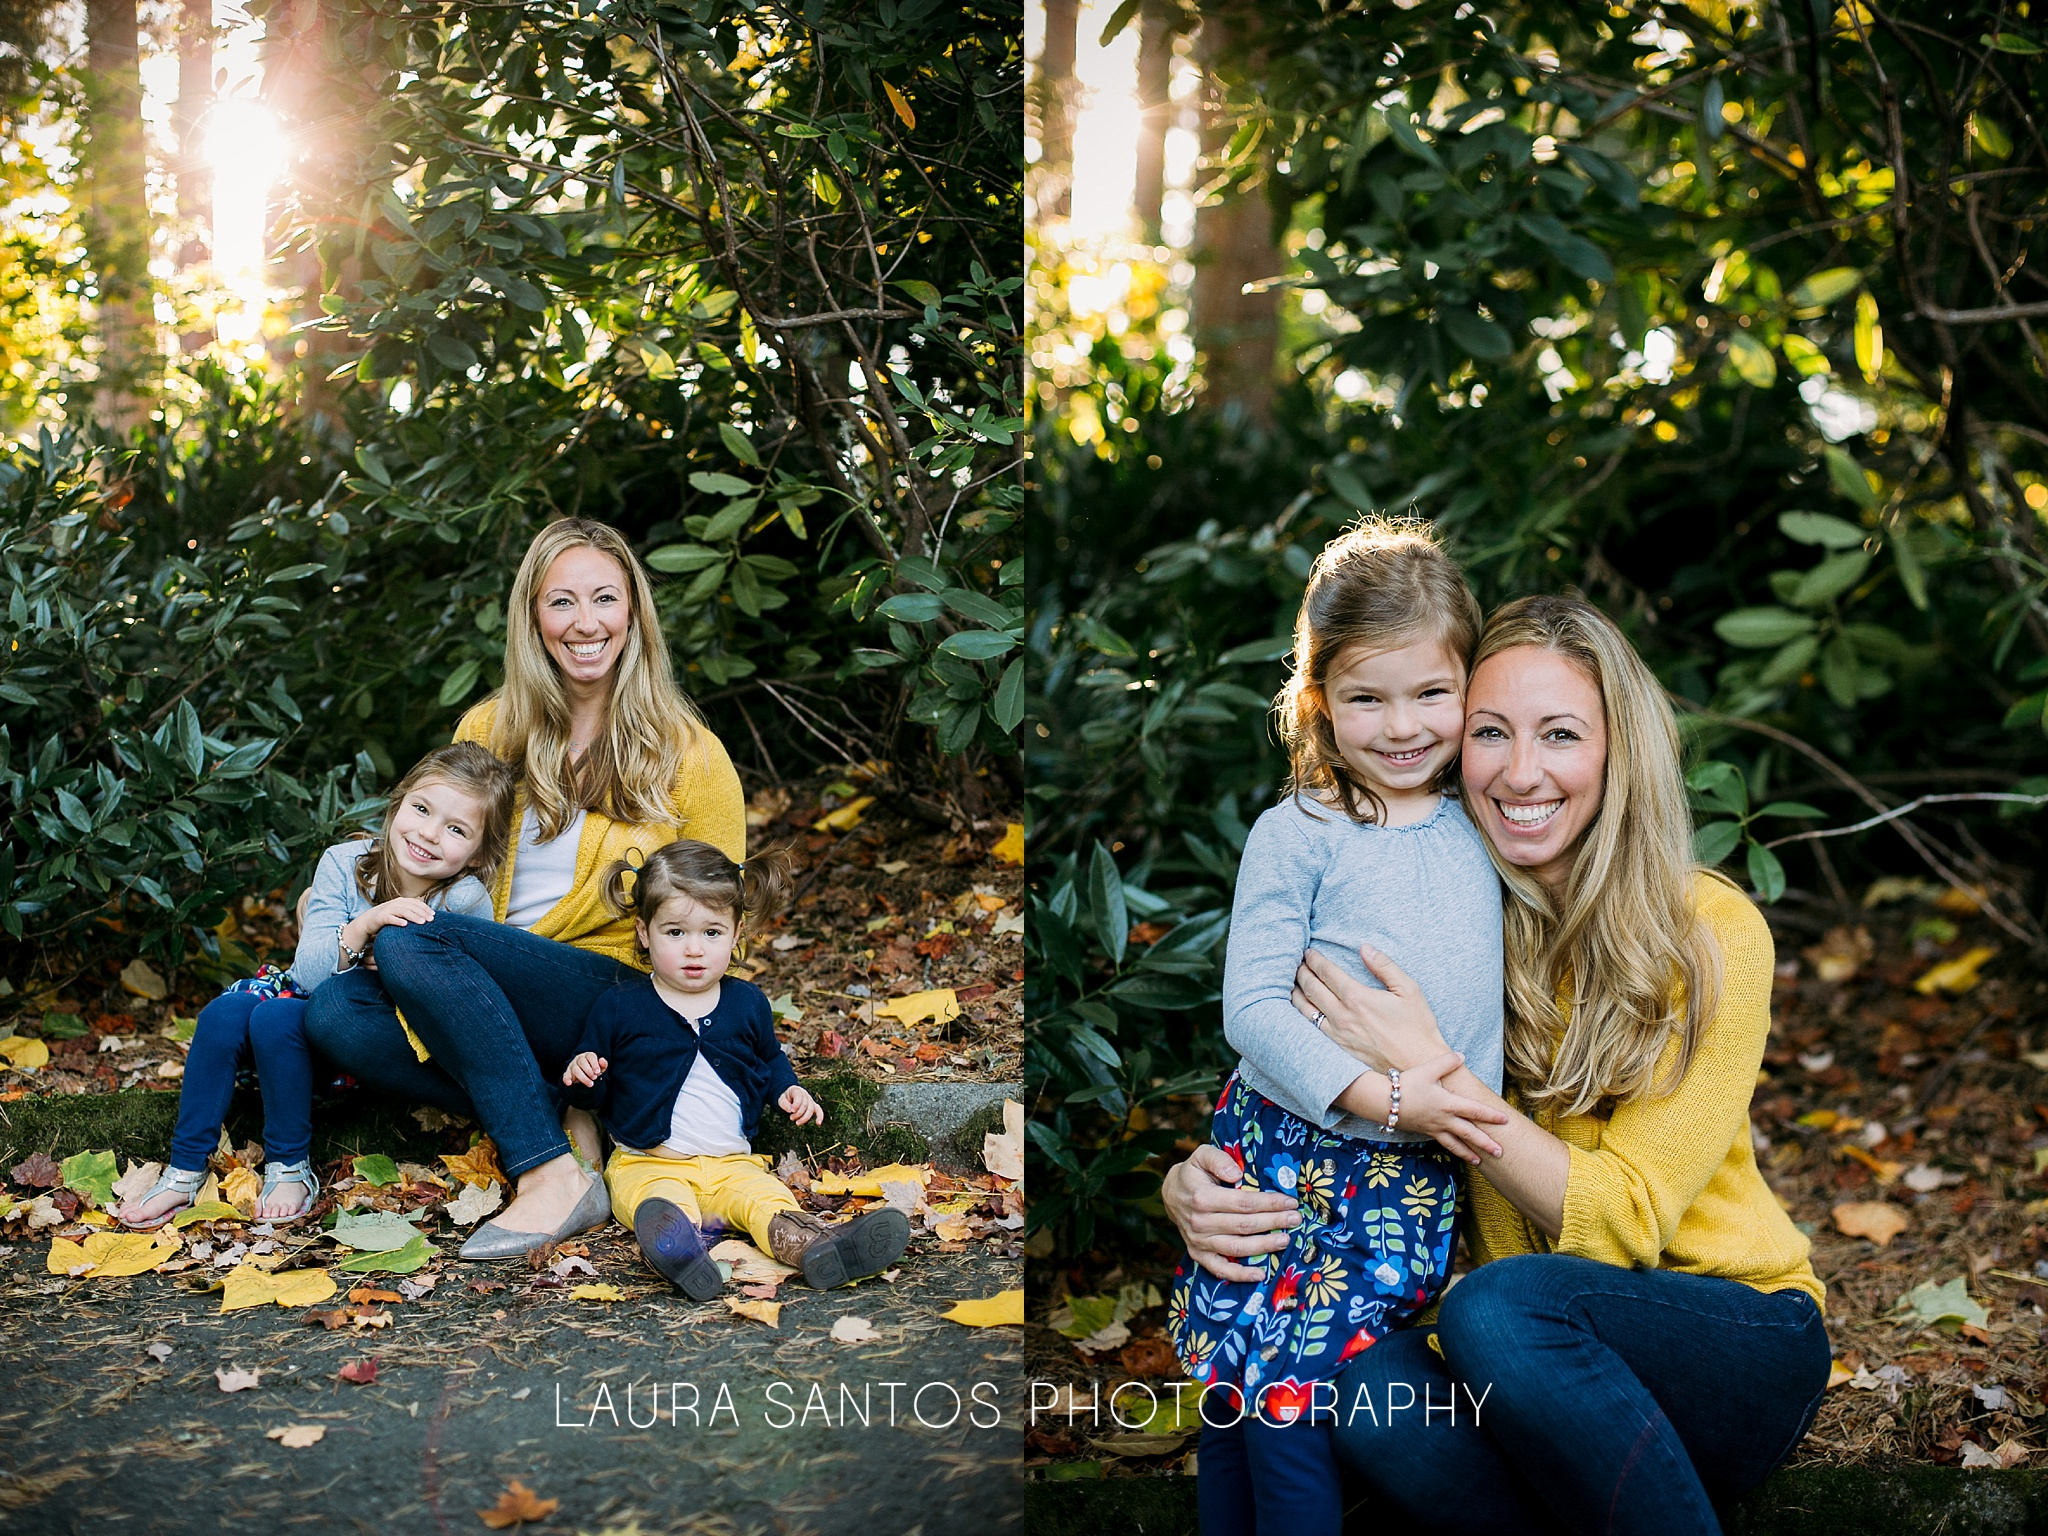 Laura Santos Photography Portland Oregon Family Photographer_0097.jpg